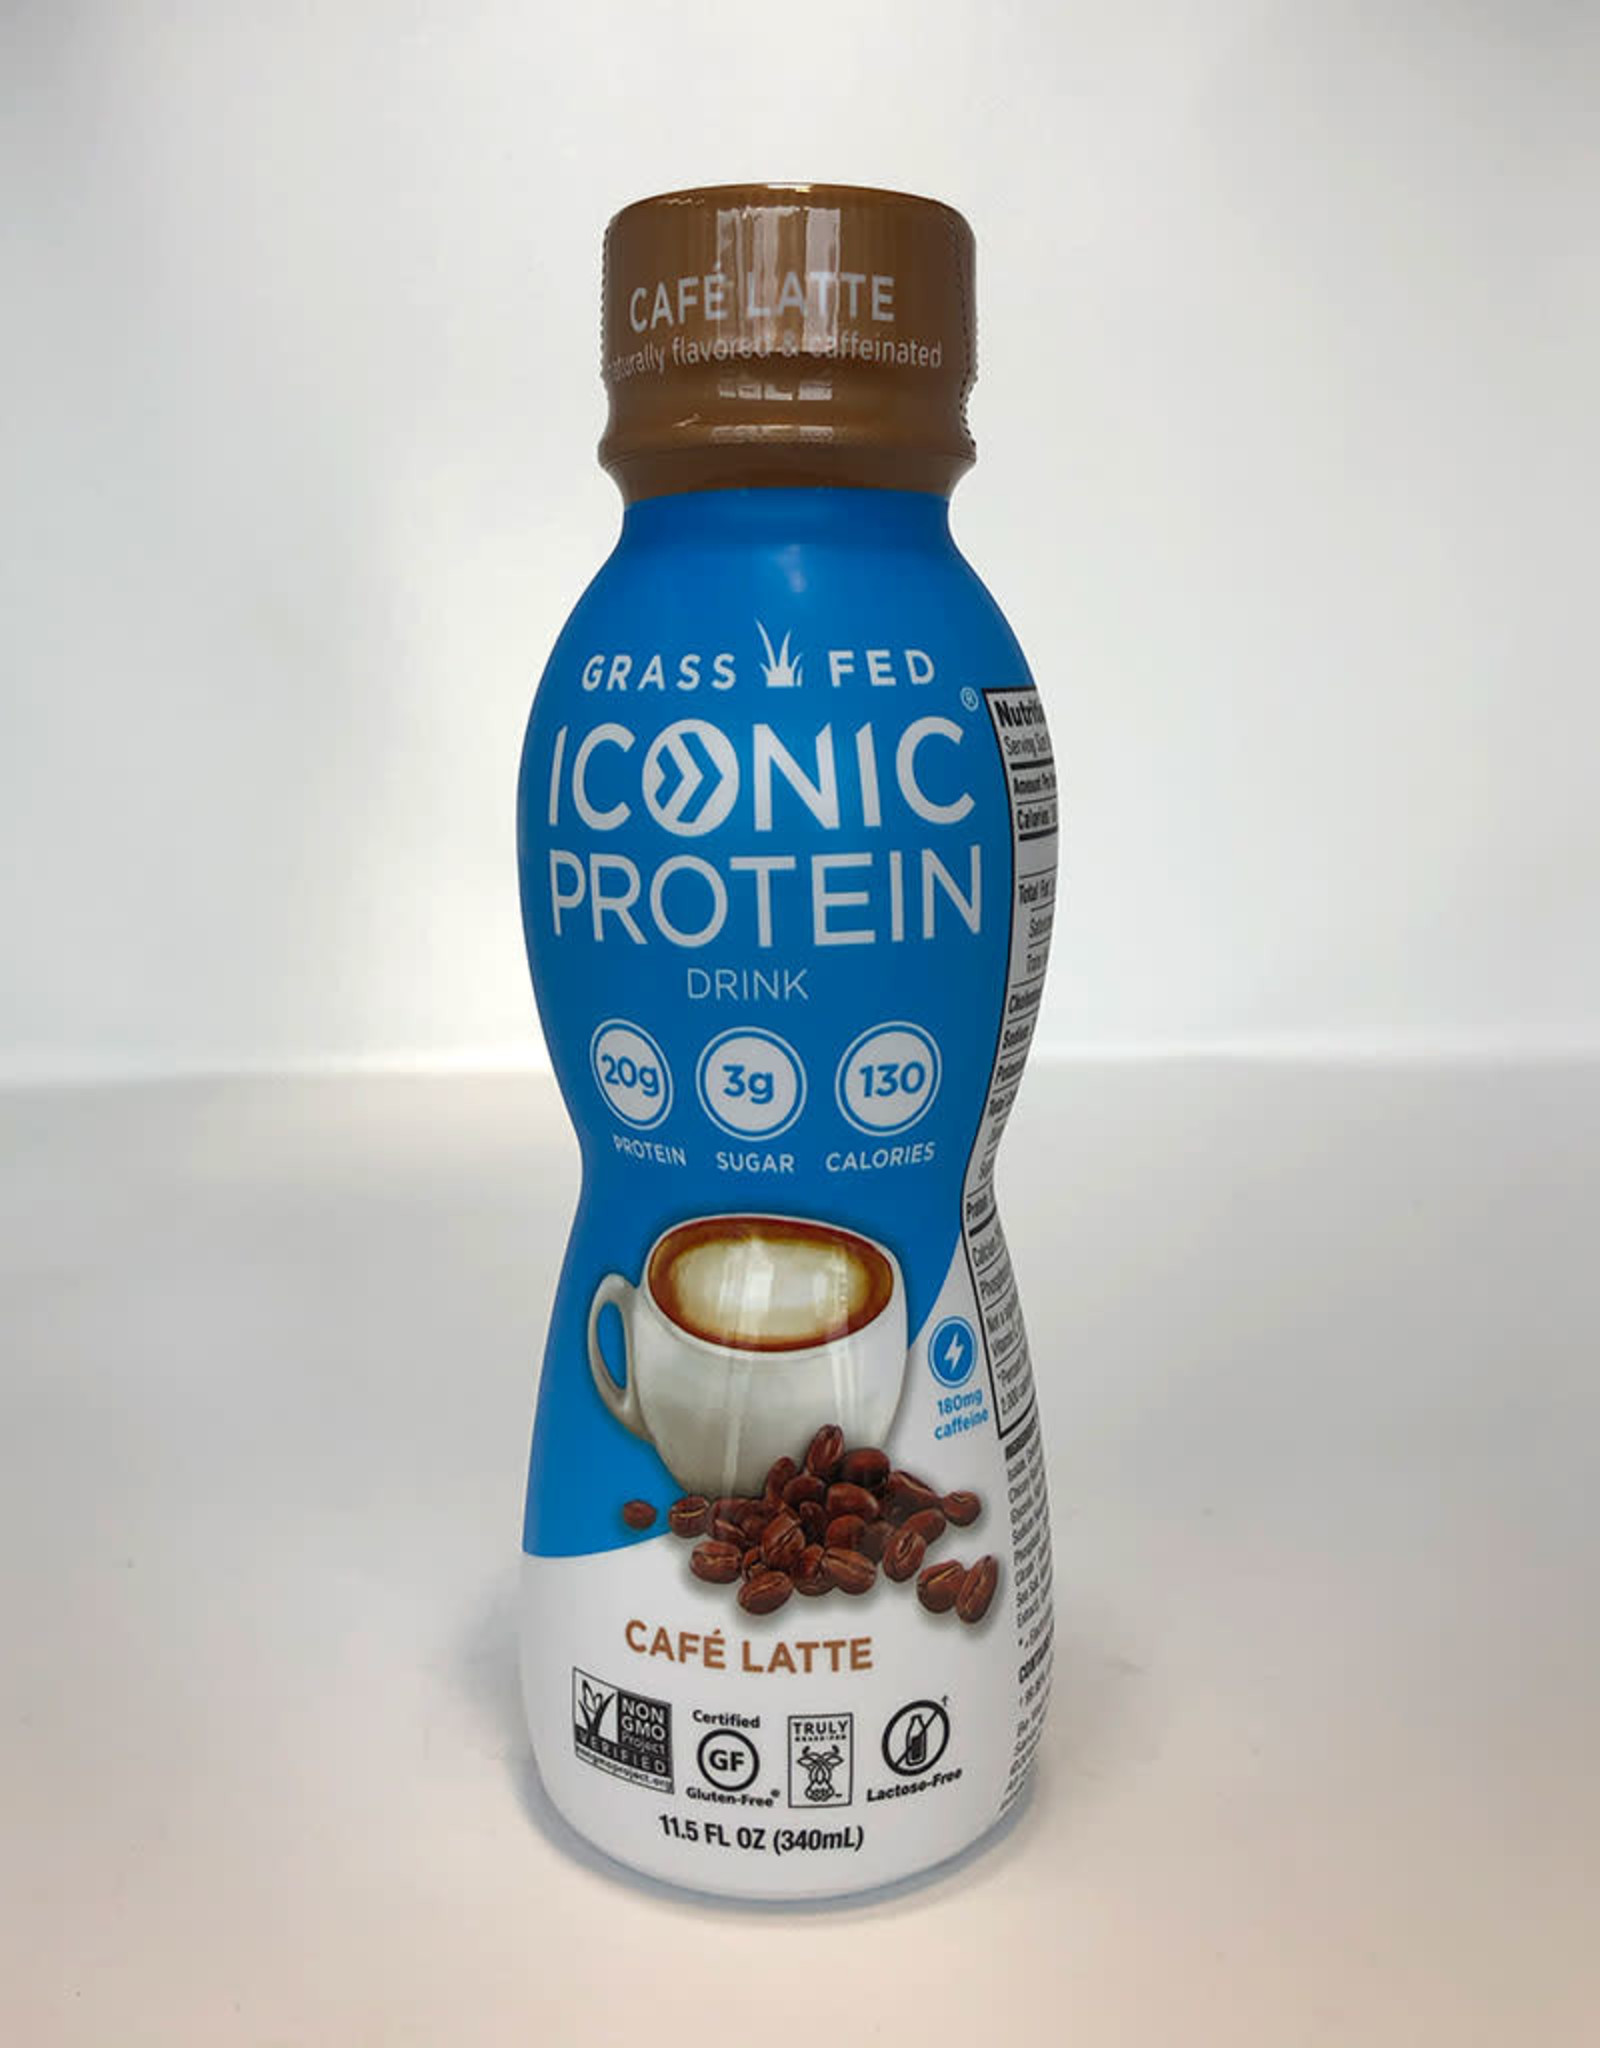 Iconic Protein Iconic Protein - Cafe Latte